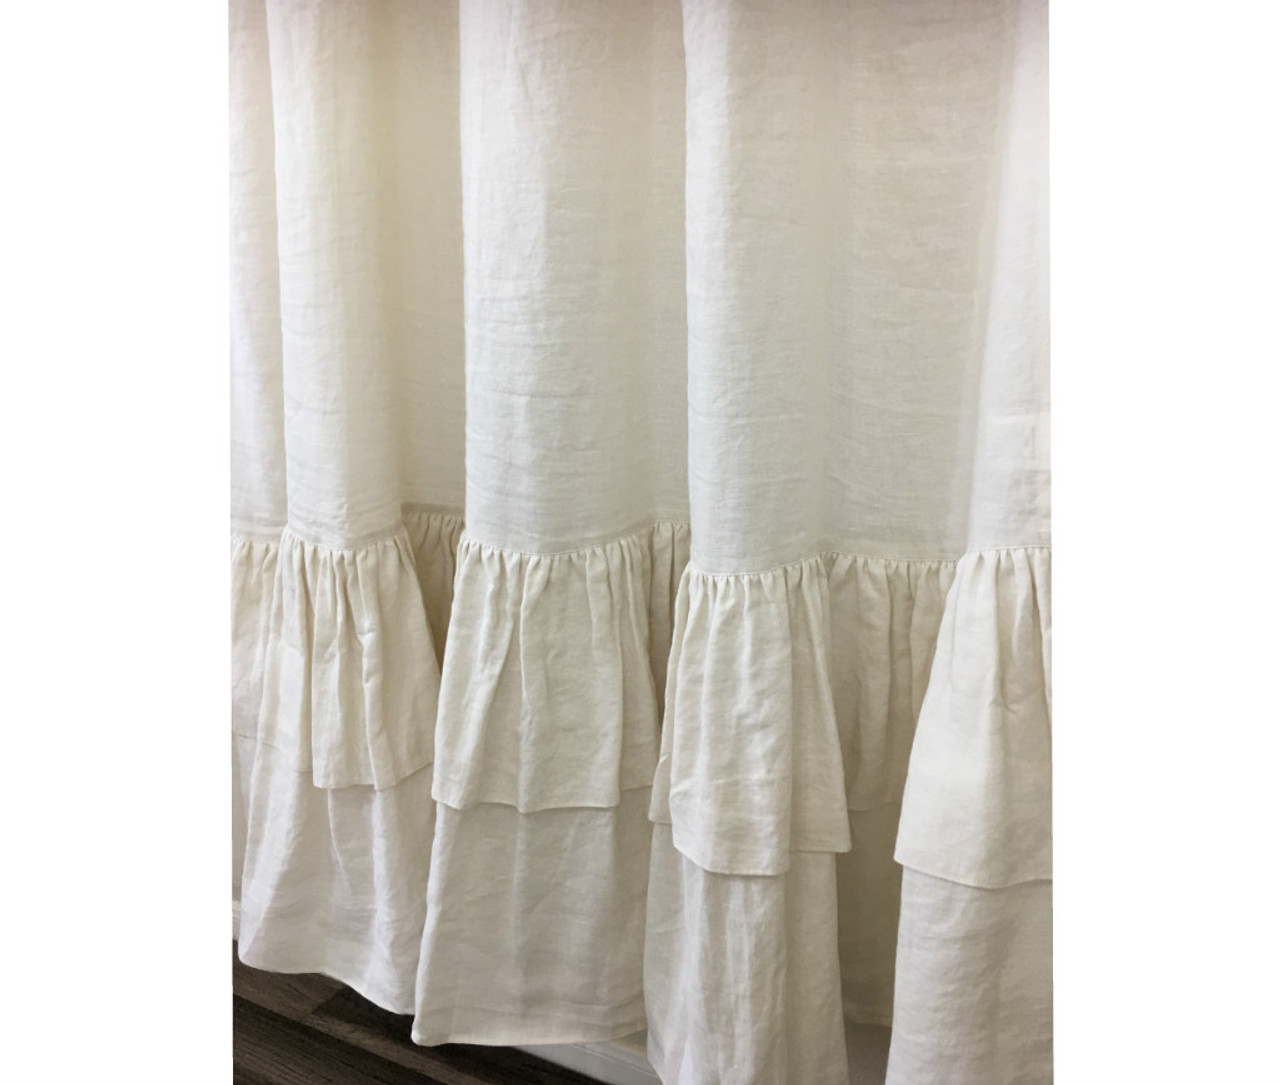 Cream Linen Shower Curtain With 2 Tiered Long Ruffles